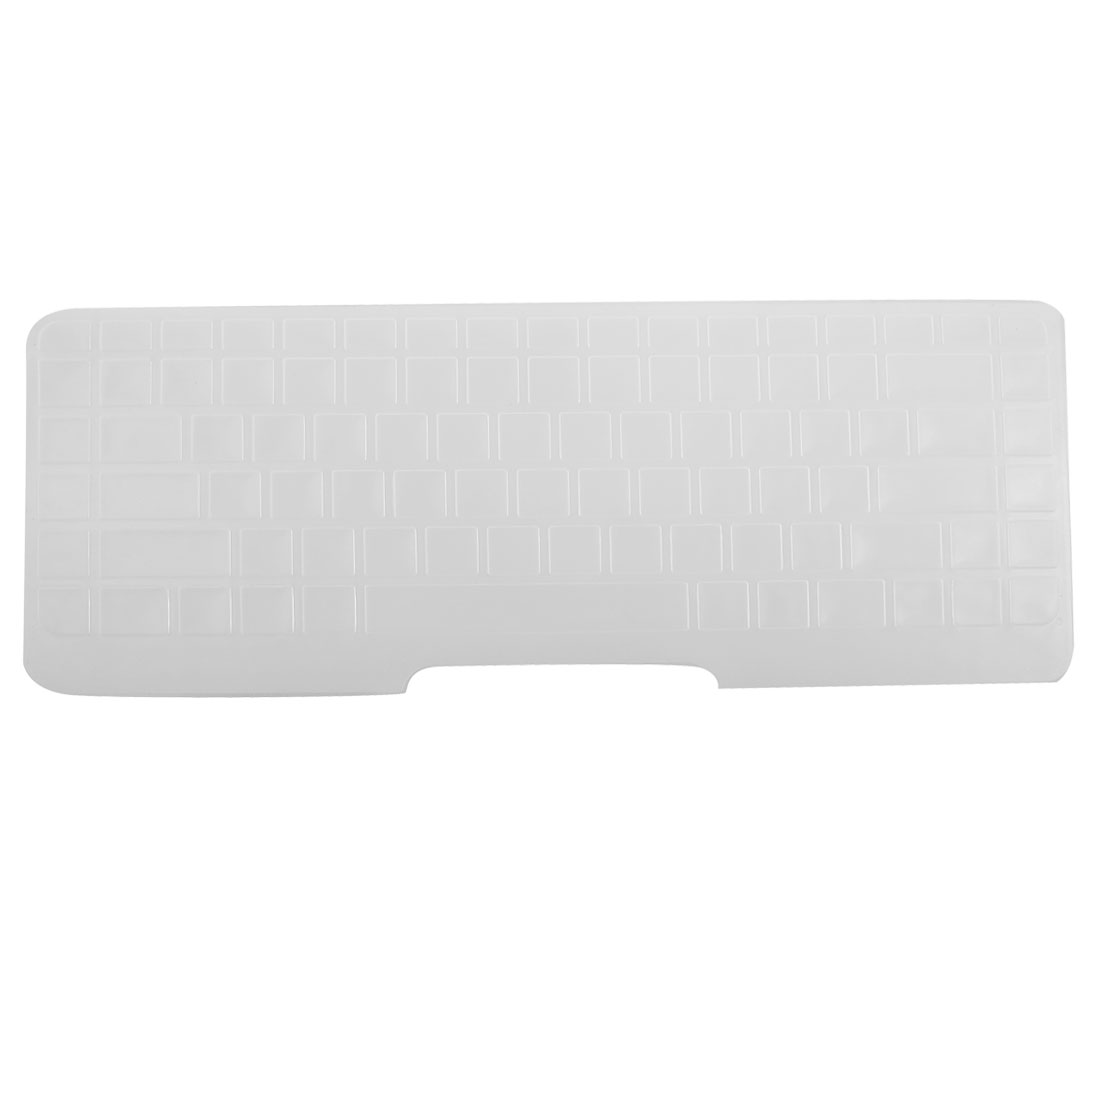 Clear White Silicone Keyboard Protective Cover Film for HP CQ62